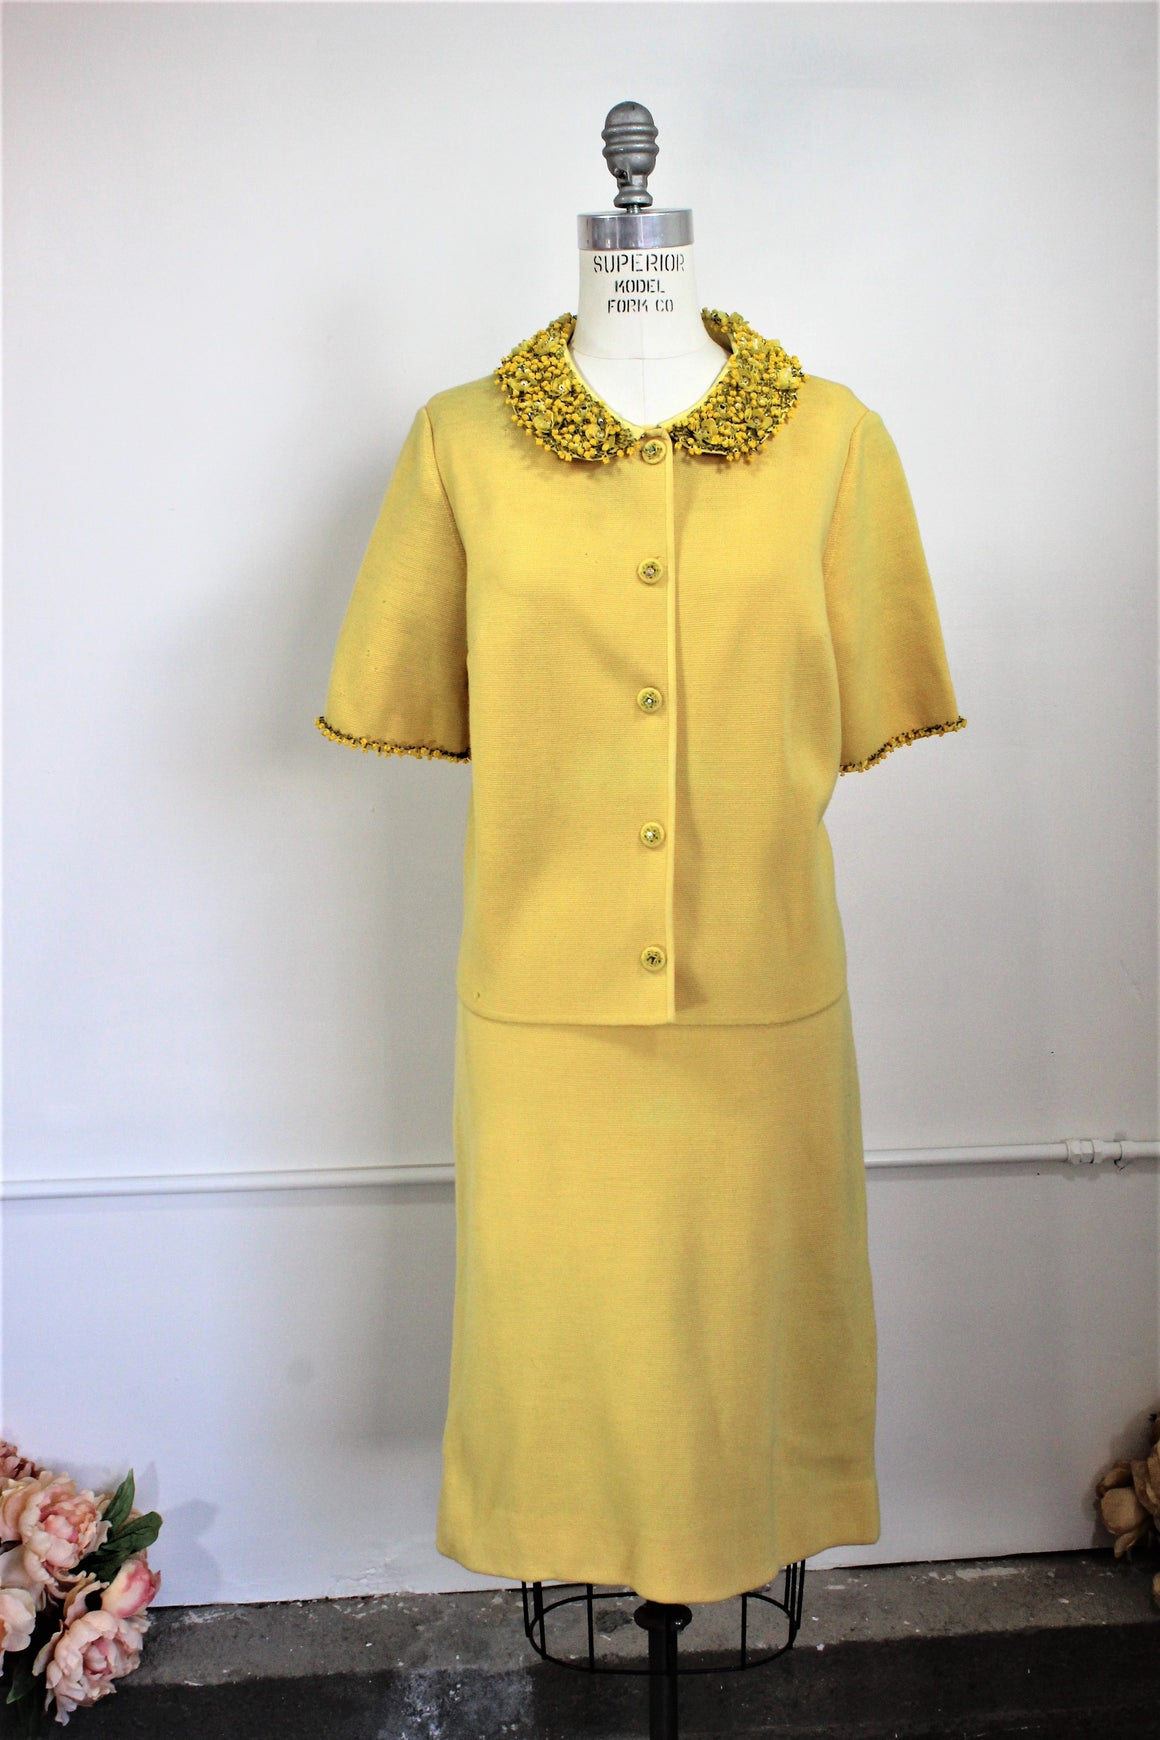 CLEARANCE: Vintage 1960s Yellow Knit Suit With Beaded Collar